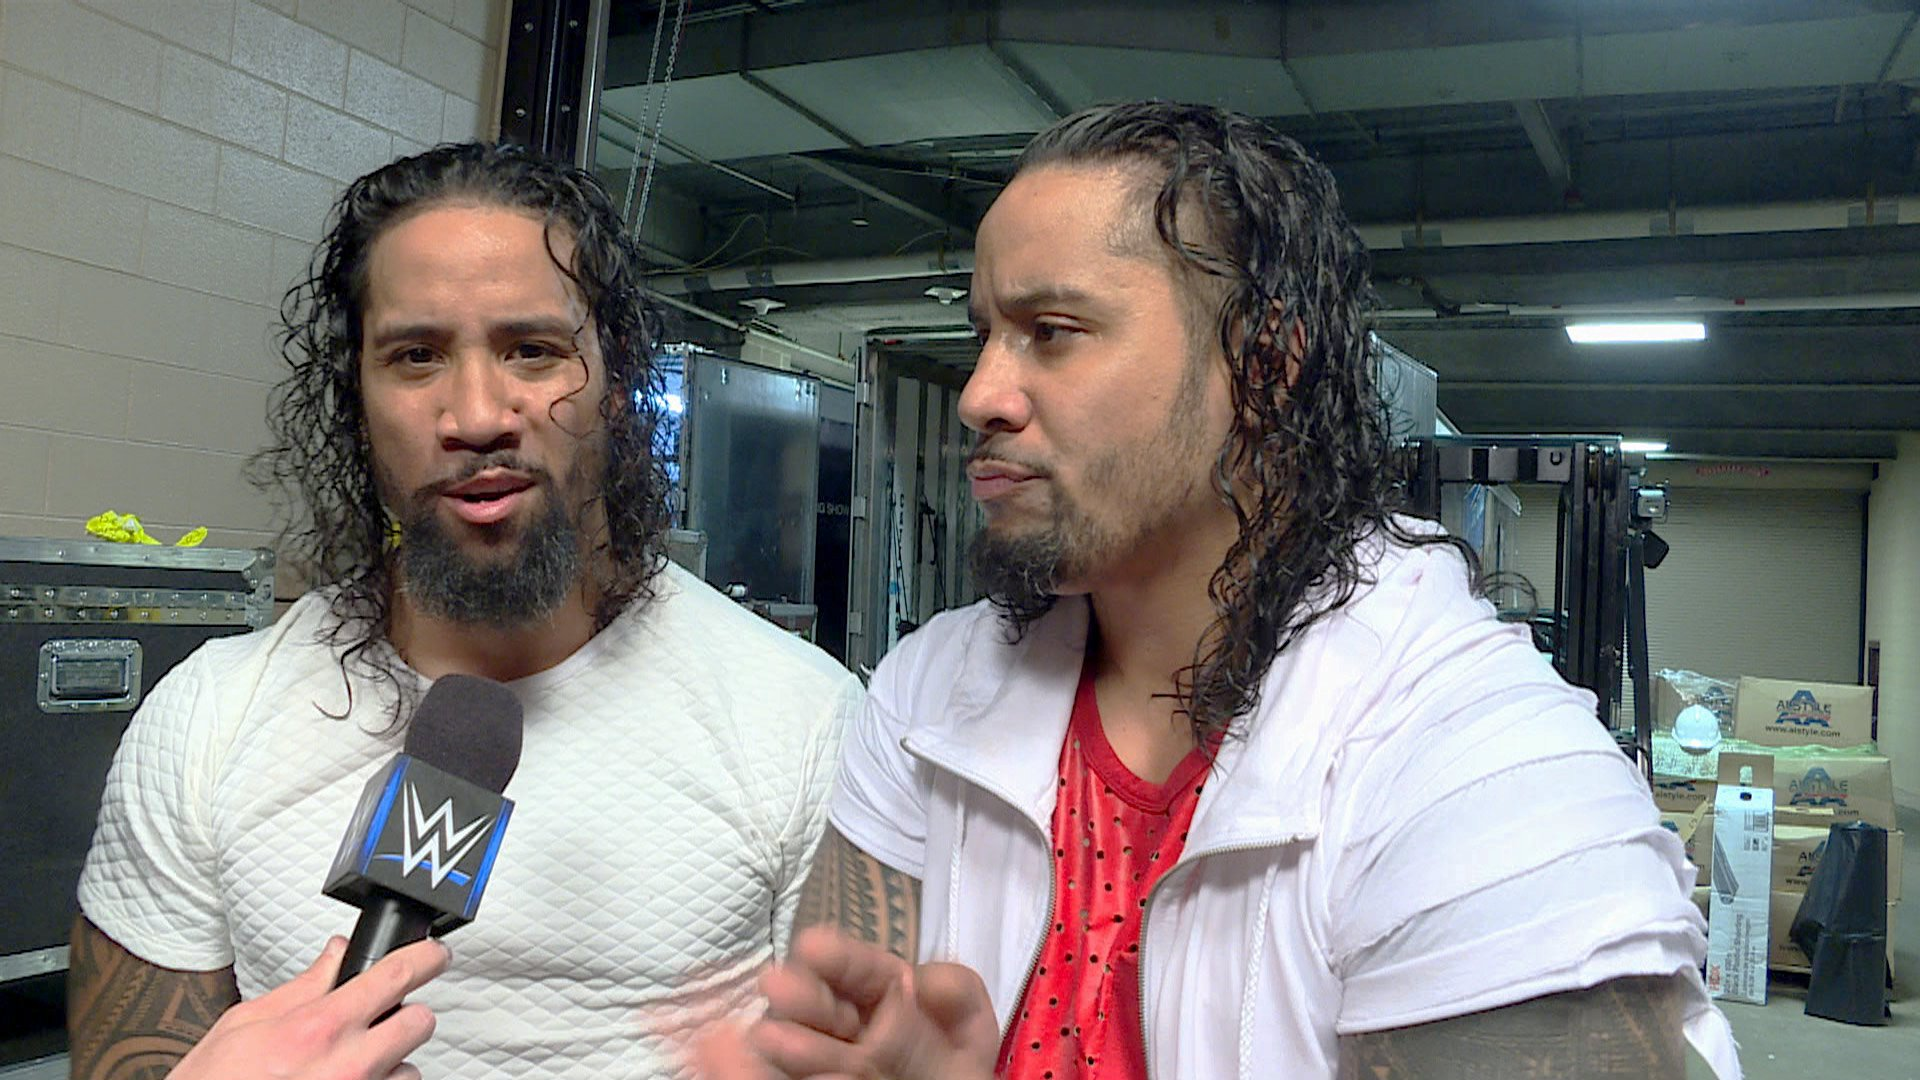 Why exactly do The Usos feel cheated? WWE.com Exclusive, Sept. 13, 2016